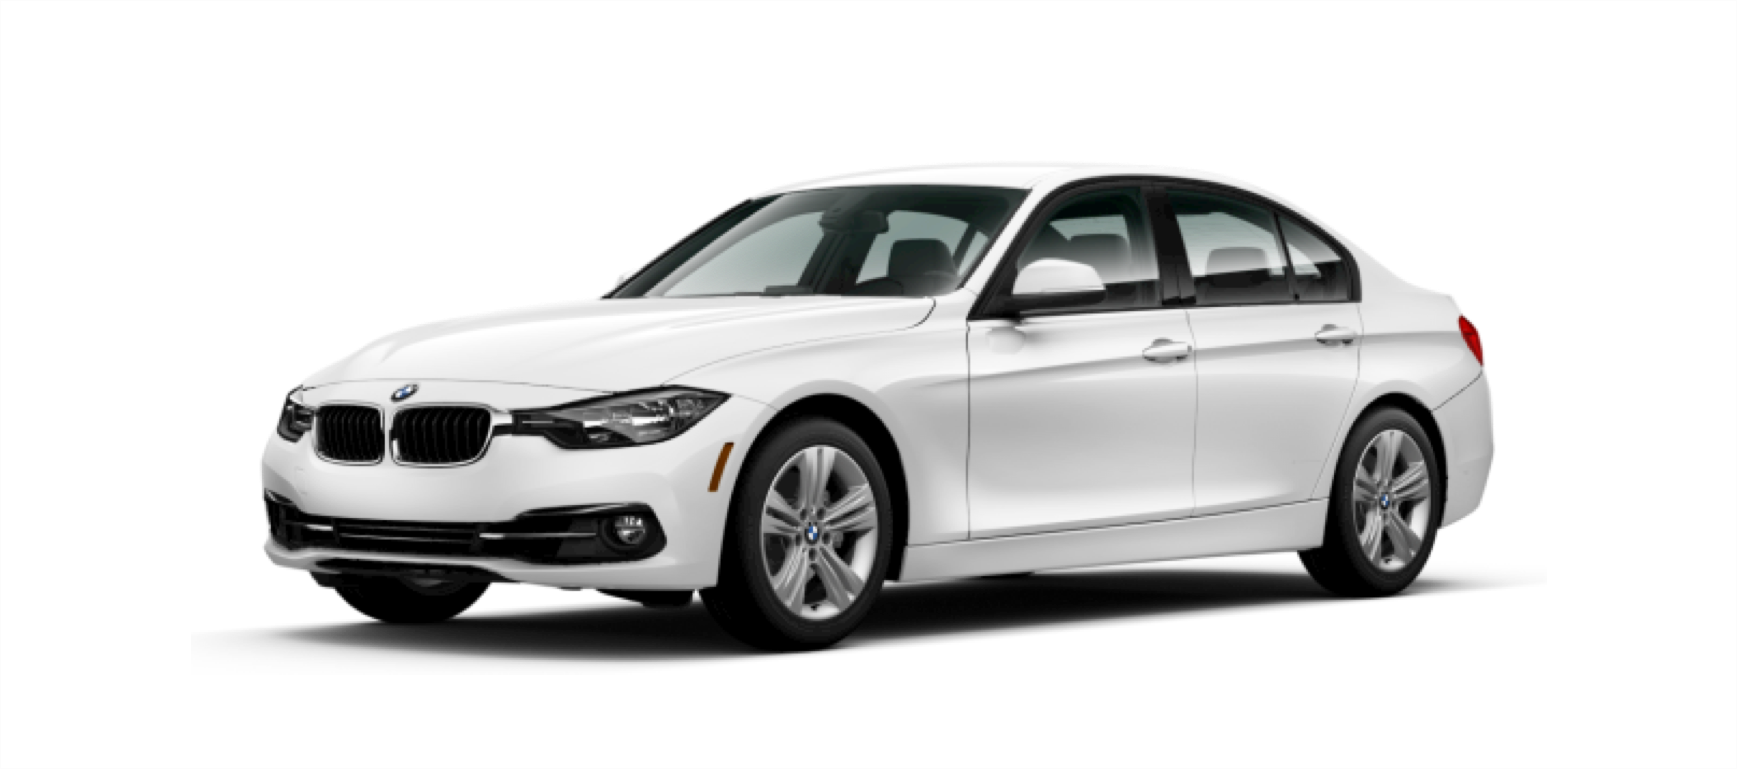 2017 BMW 3 Series sedan for sale at Costa Mesa BMW dealership near Newport Beach